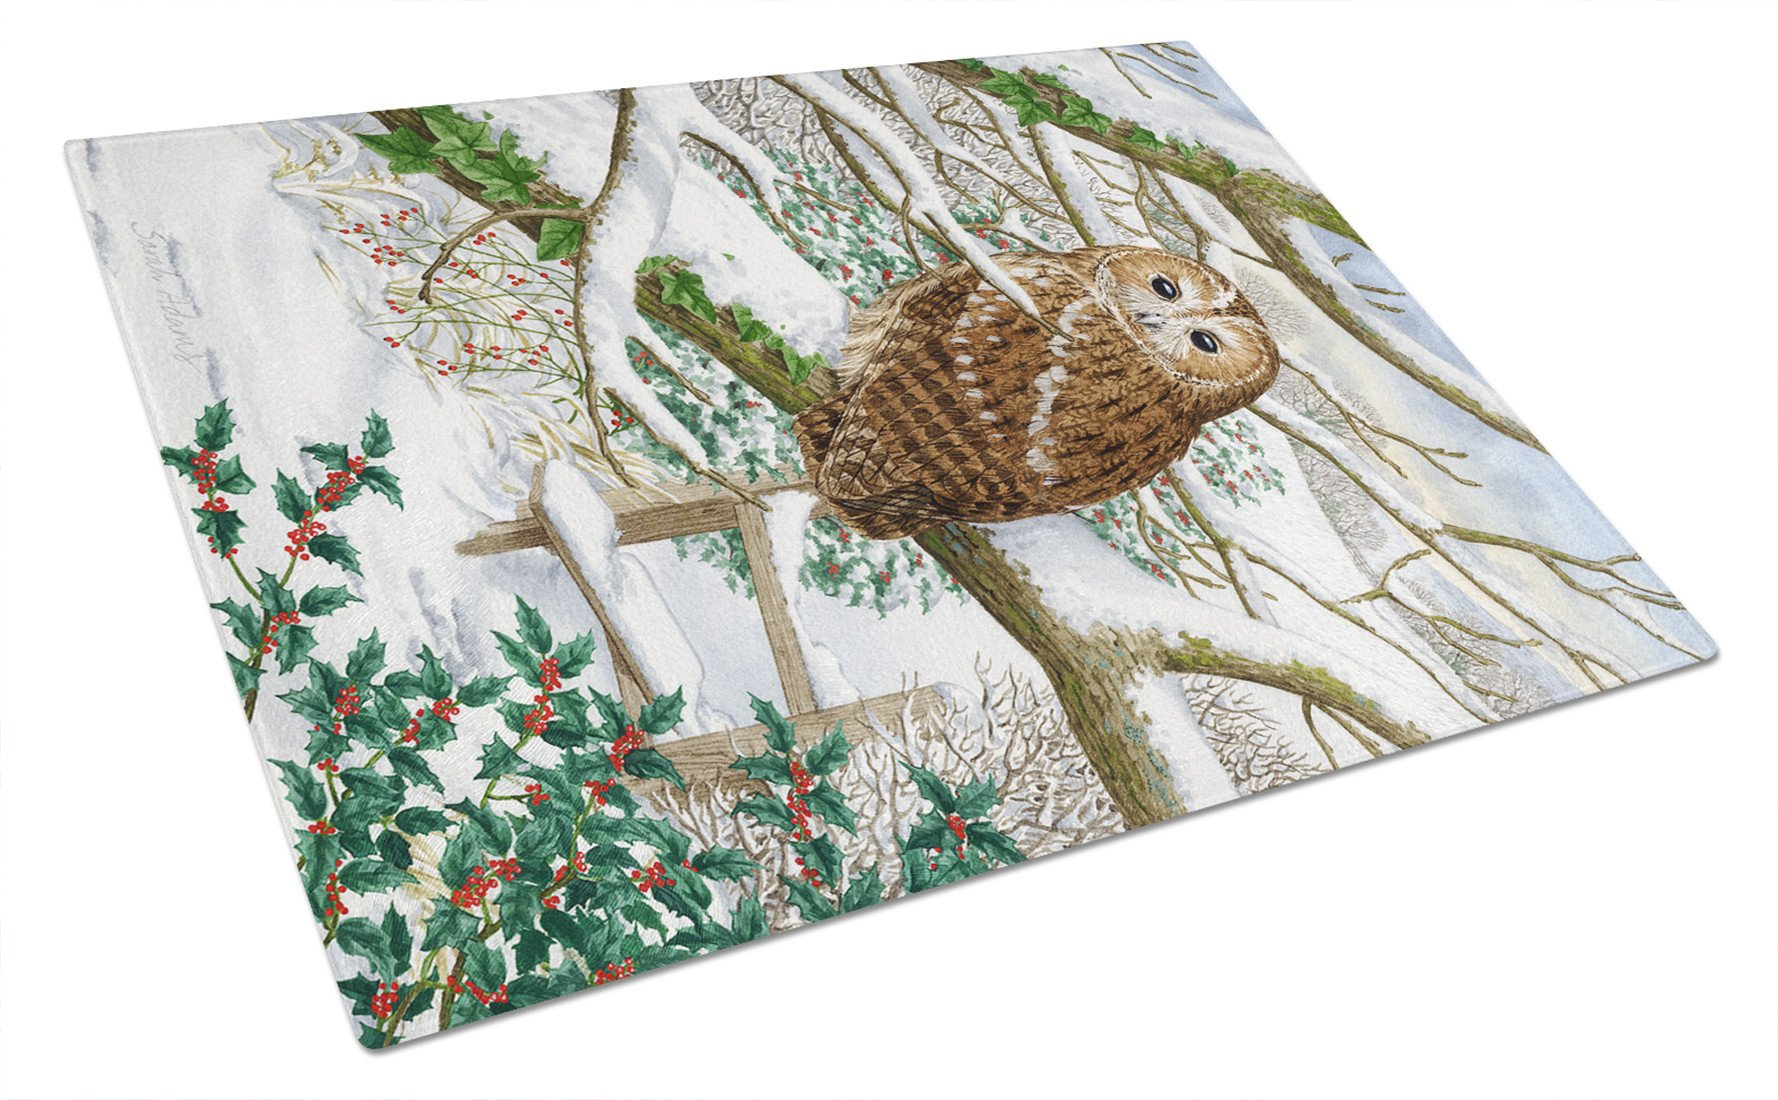 Tawny Owl Glass Cutting Board Large ASA2008LCB by Caroline's Treasures